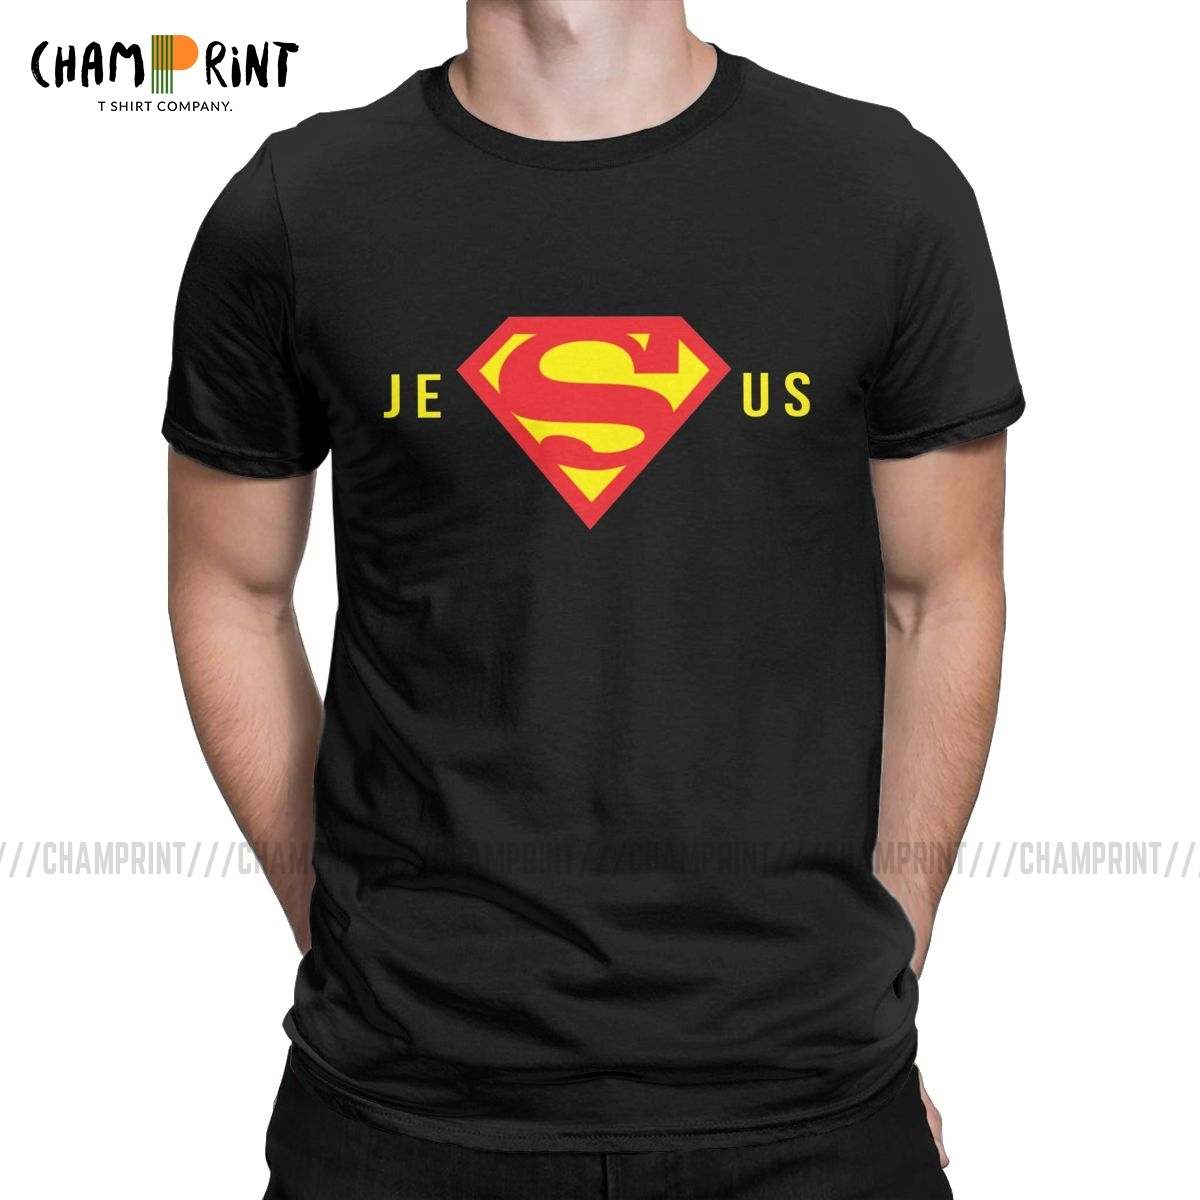 Funny Super Jesus T-<font><b>Shirt</b></font> for Men Round Collar 100% Cotton T <font><b>Shirts</b></font> Christian <font><b>God</b></font> Short Sleeve Tees 4XL 5XL Clothes image